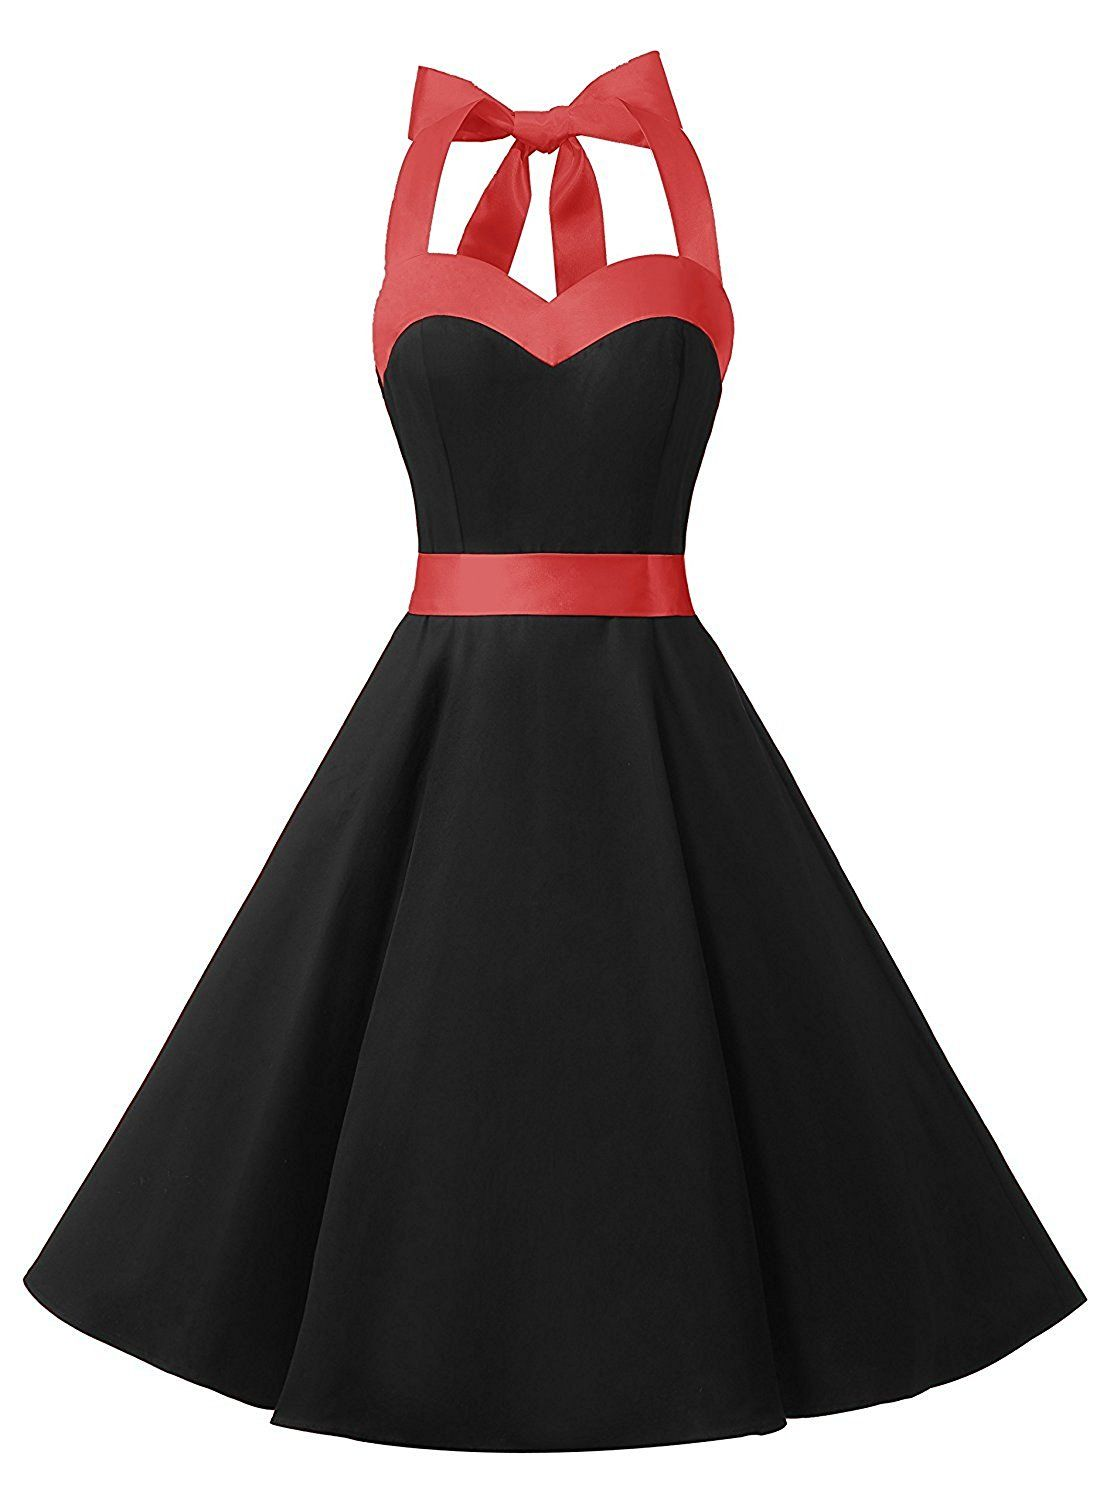 Rockabilly Dresses | Rockabilly clothing, Rockabilly and 1950s